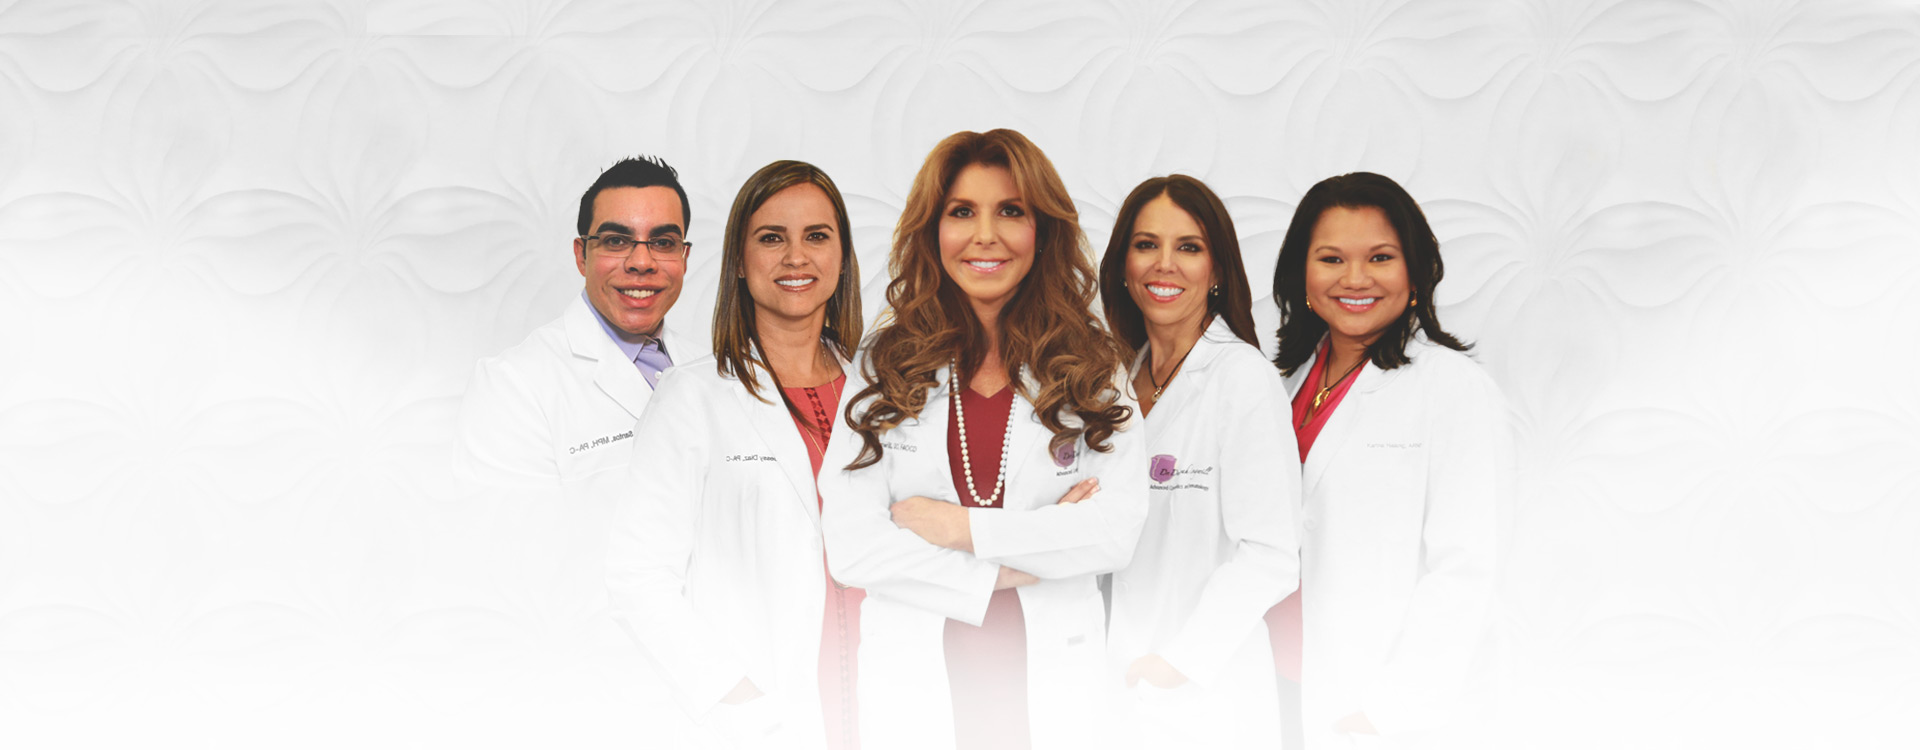 Dr. Longwill and her staff